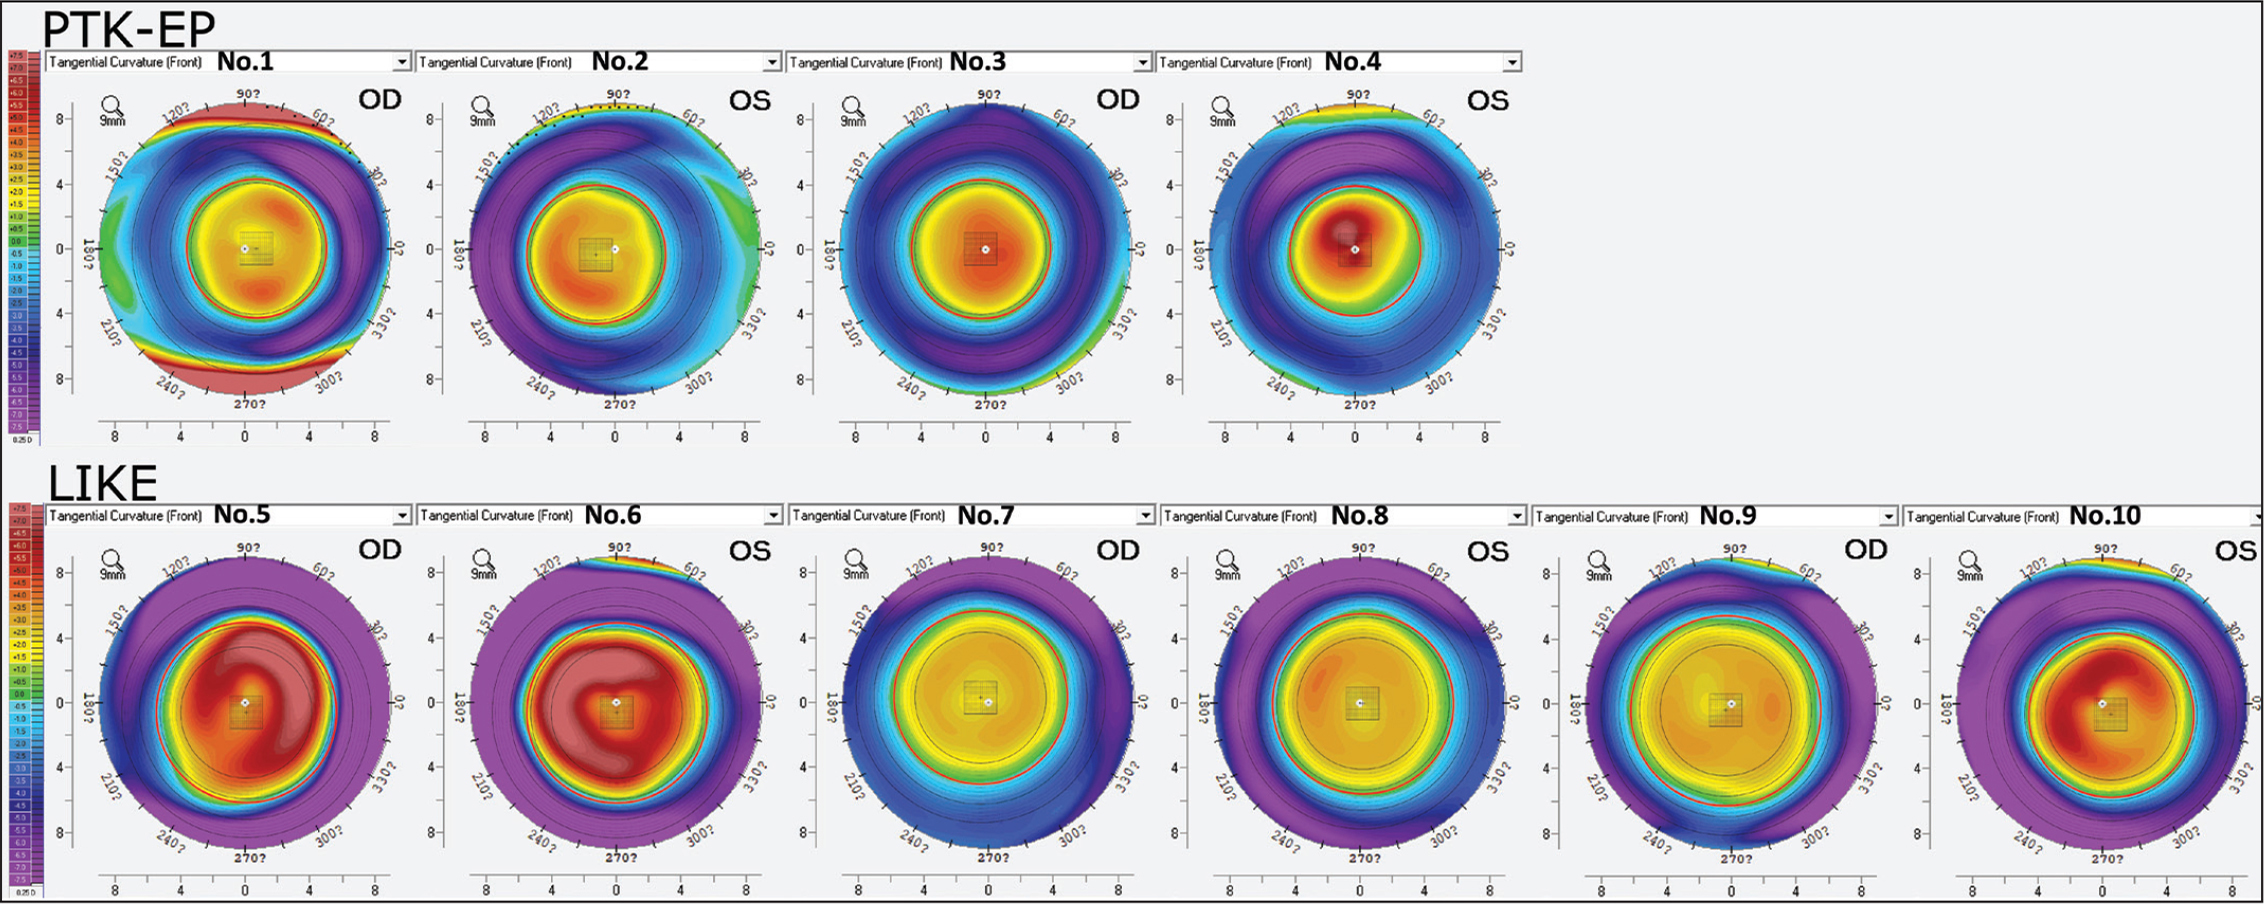 Pentacam (Oculus Optikgeräte) tangential difference maps for the four transepithelial phototherapeutic keratectomy (PTK-EP) cases and femtosecond laser–assisted lenticule intrastromal keratoplasty (LIKE) cases. The perimeter of the optical zone is identified by the red circle. The center of the optical zone is indicated by the black cross and the corneal vertex is indicated by the white dot. OD = right eye; OS = left eye